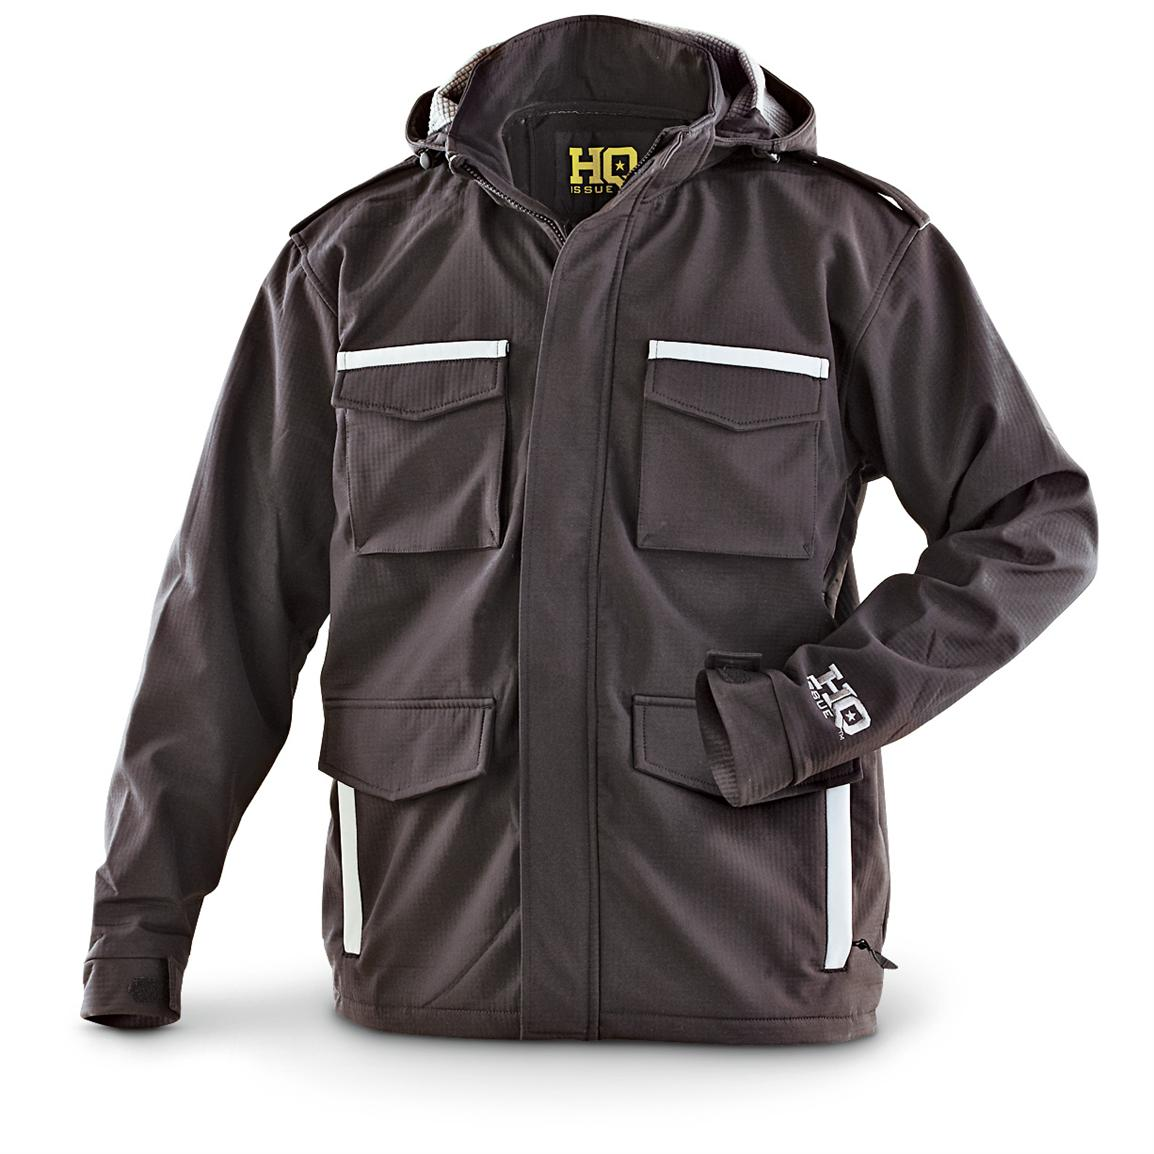 HQ ISSUE® Military-style Grid Jacket, Black